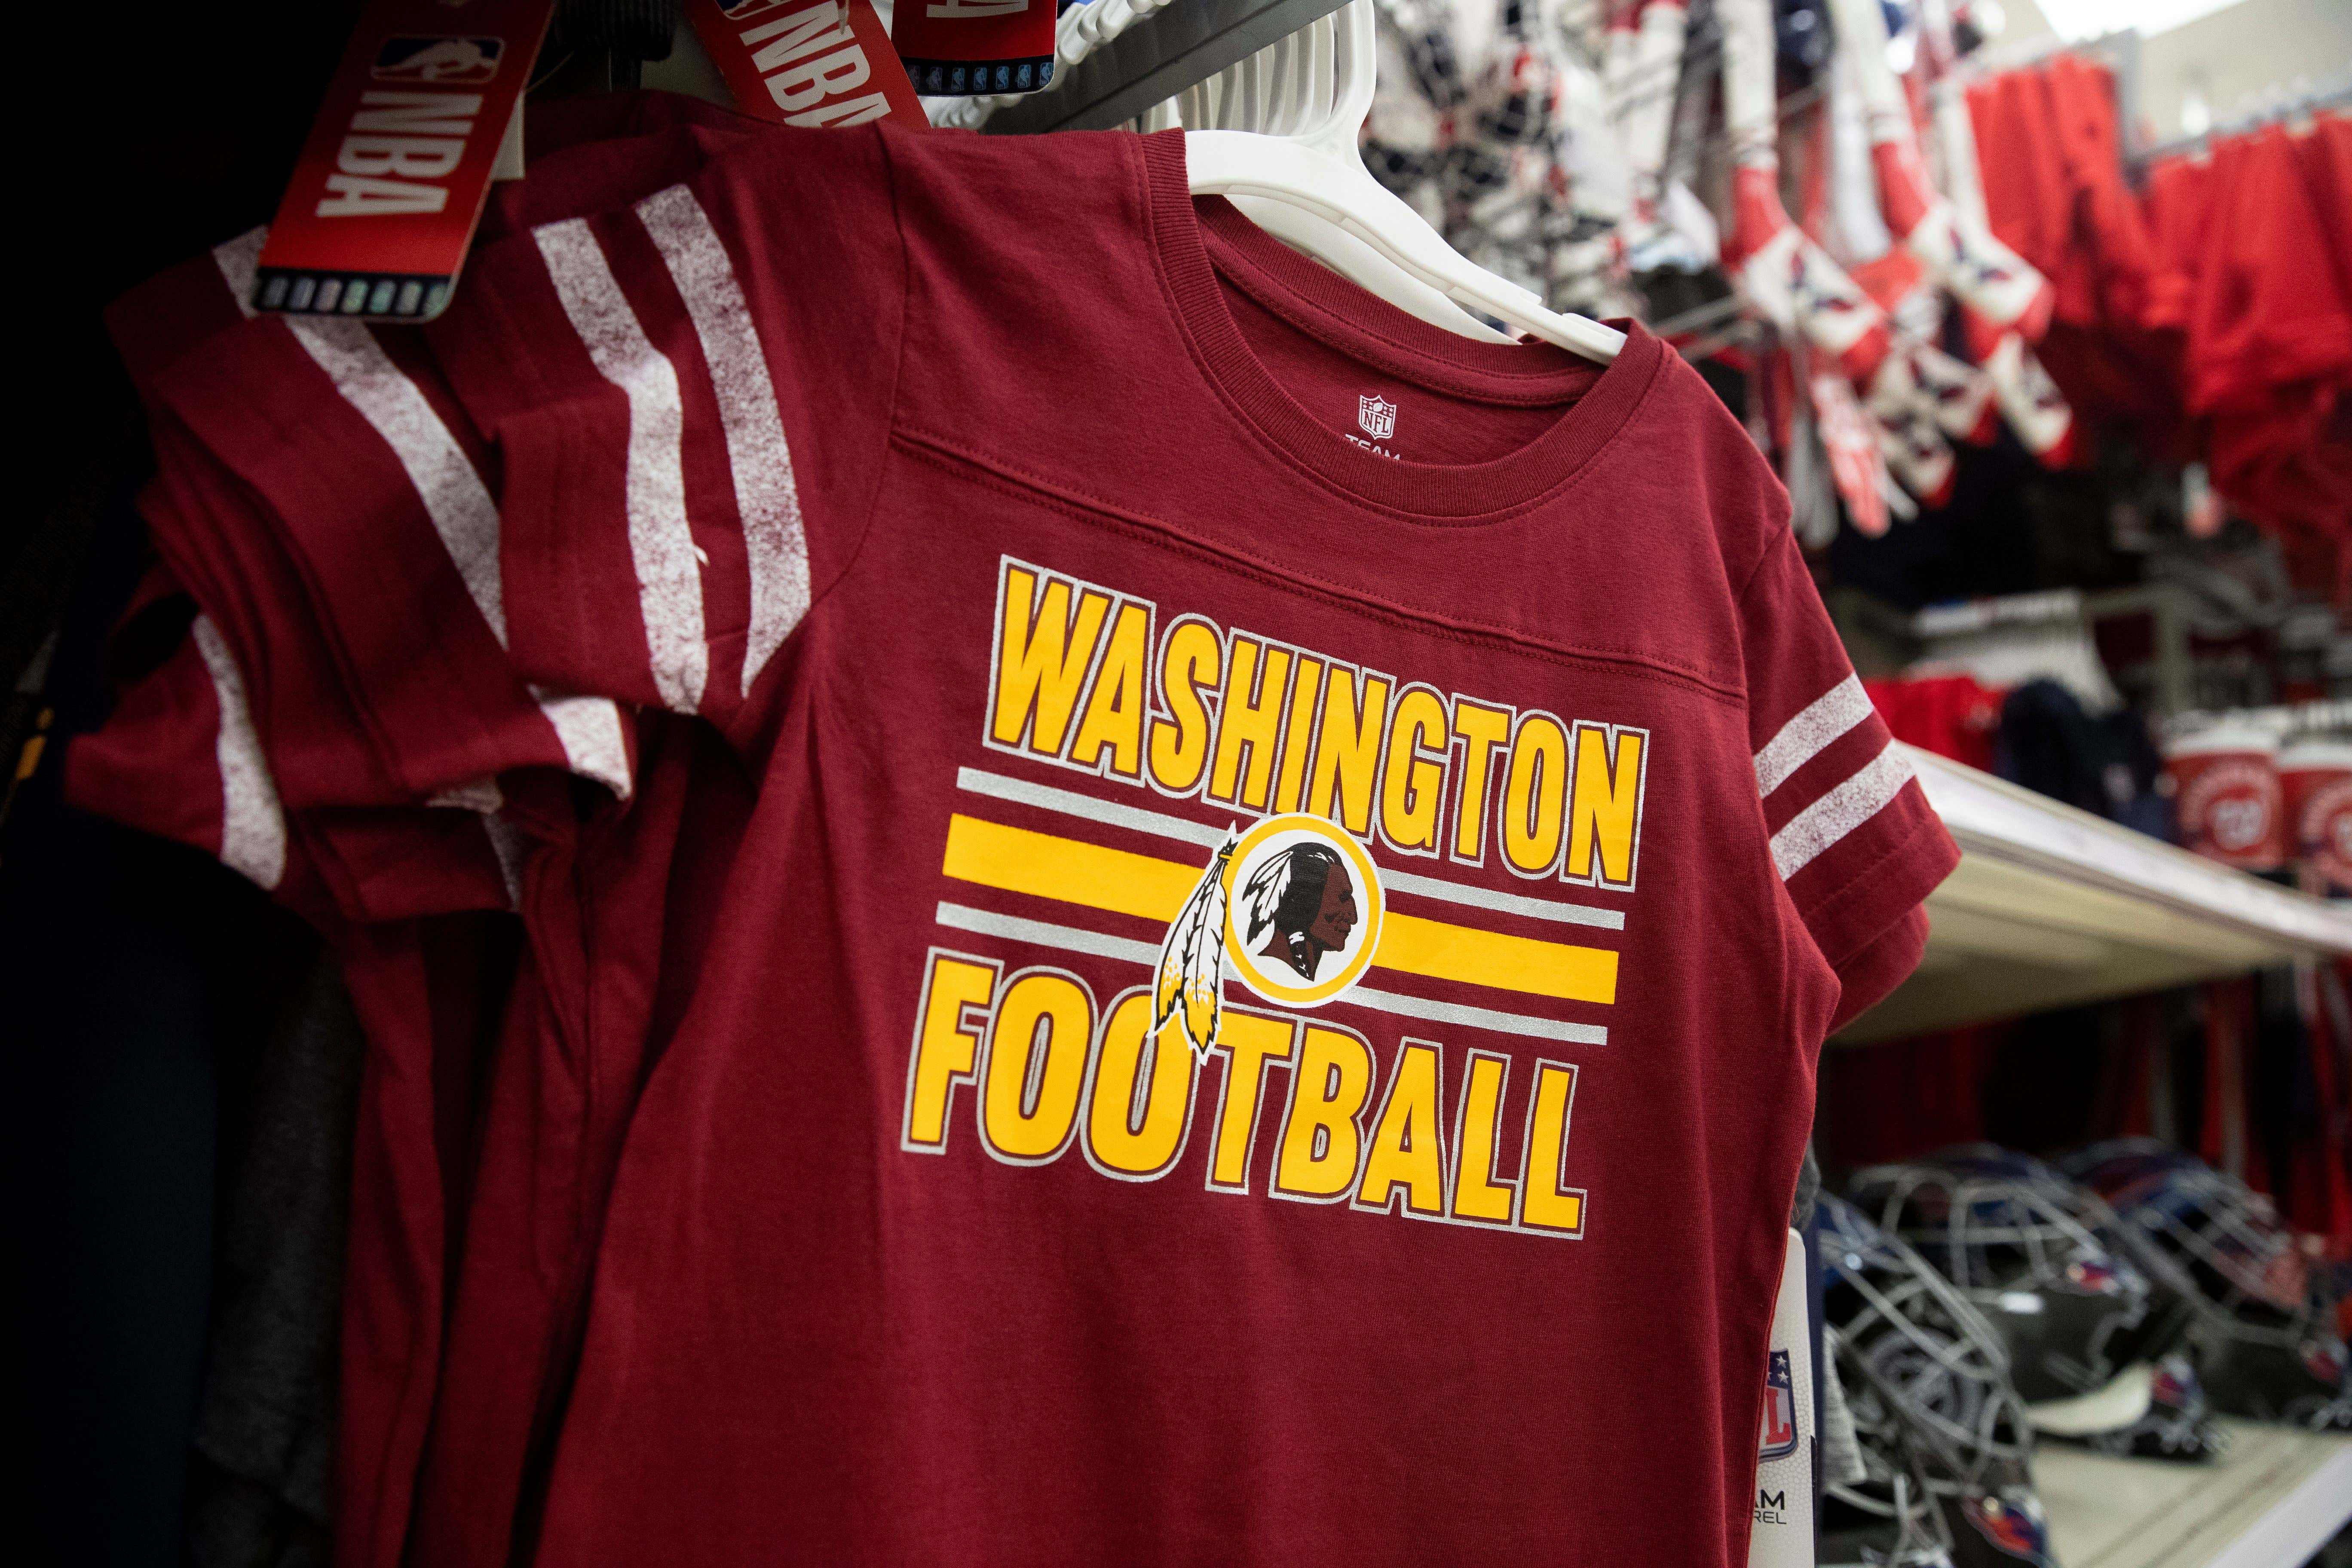 National Football League's Washington Redskins will change the Redskins name and logo, Alexandria, USA - 13 Jul 2020